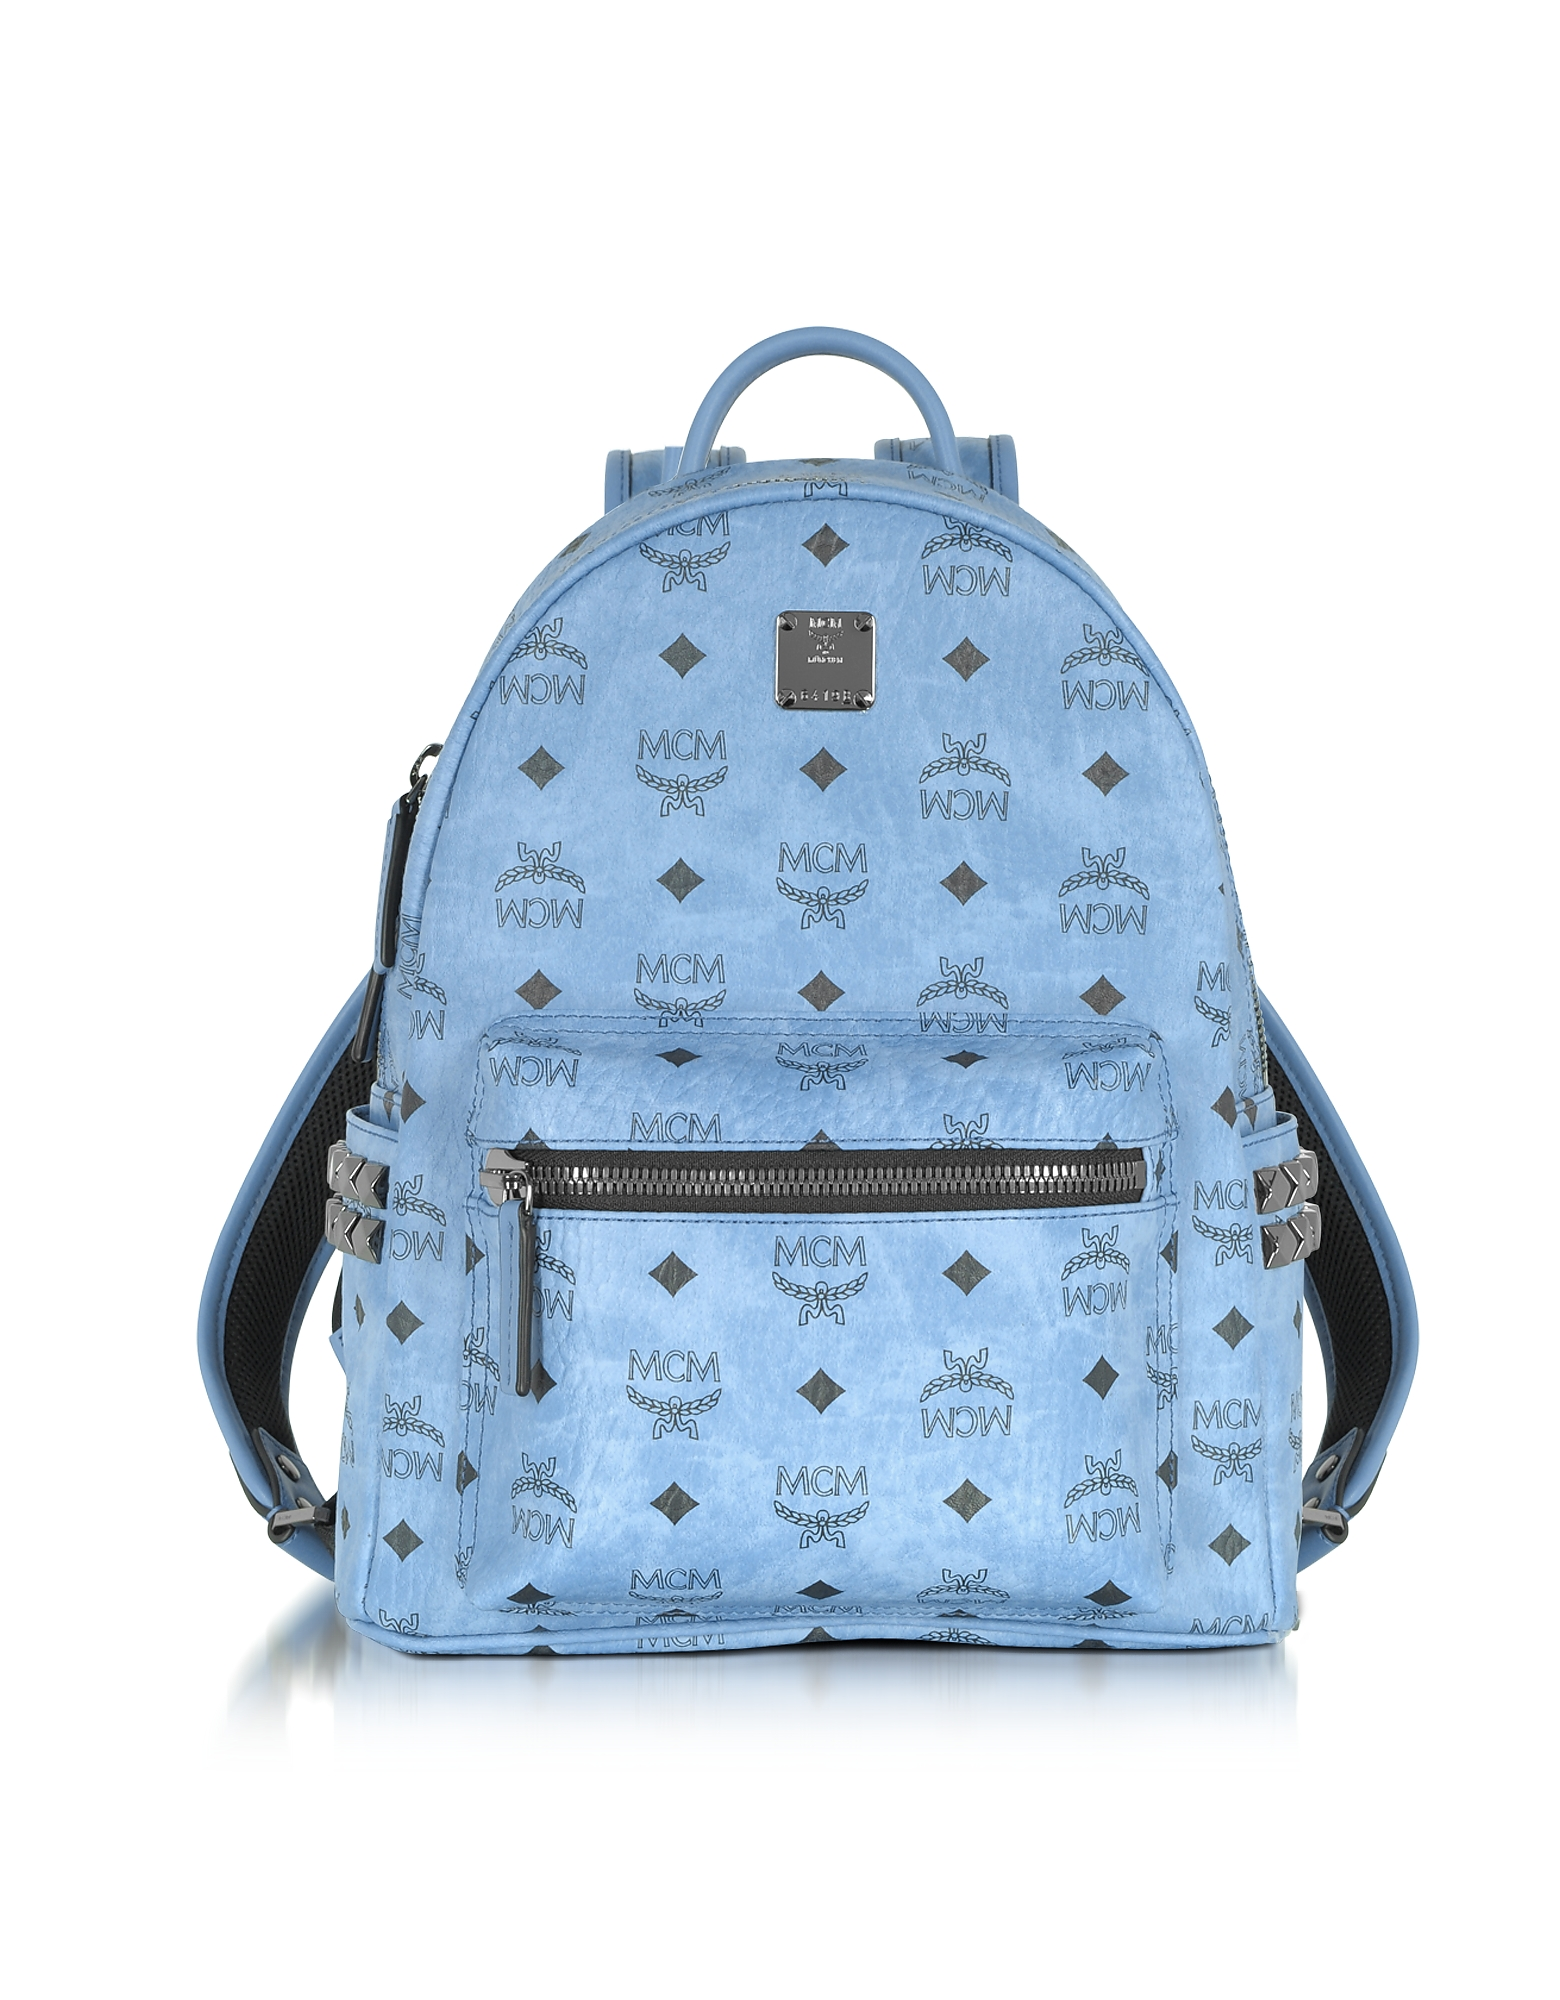 MCM Handbags, Denim Small Stark Backpack